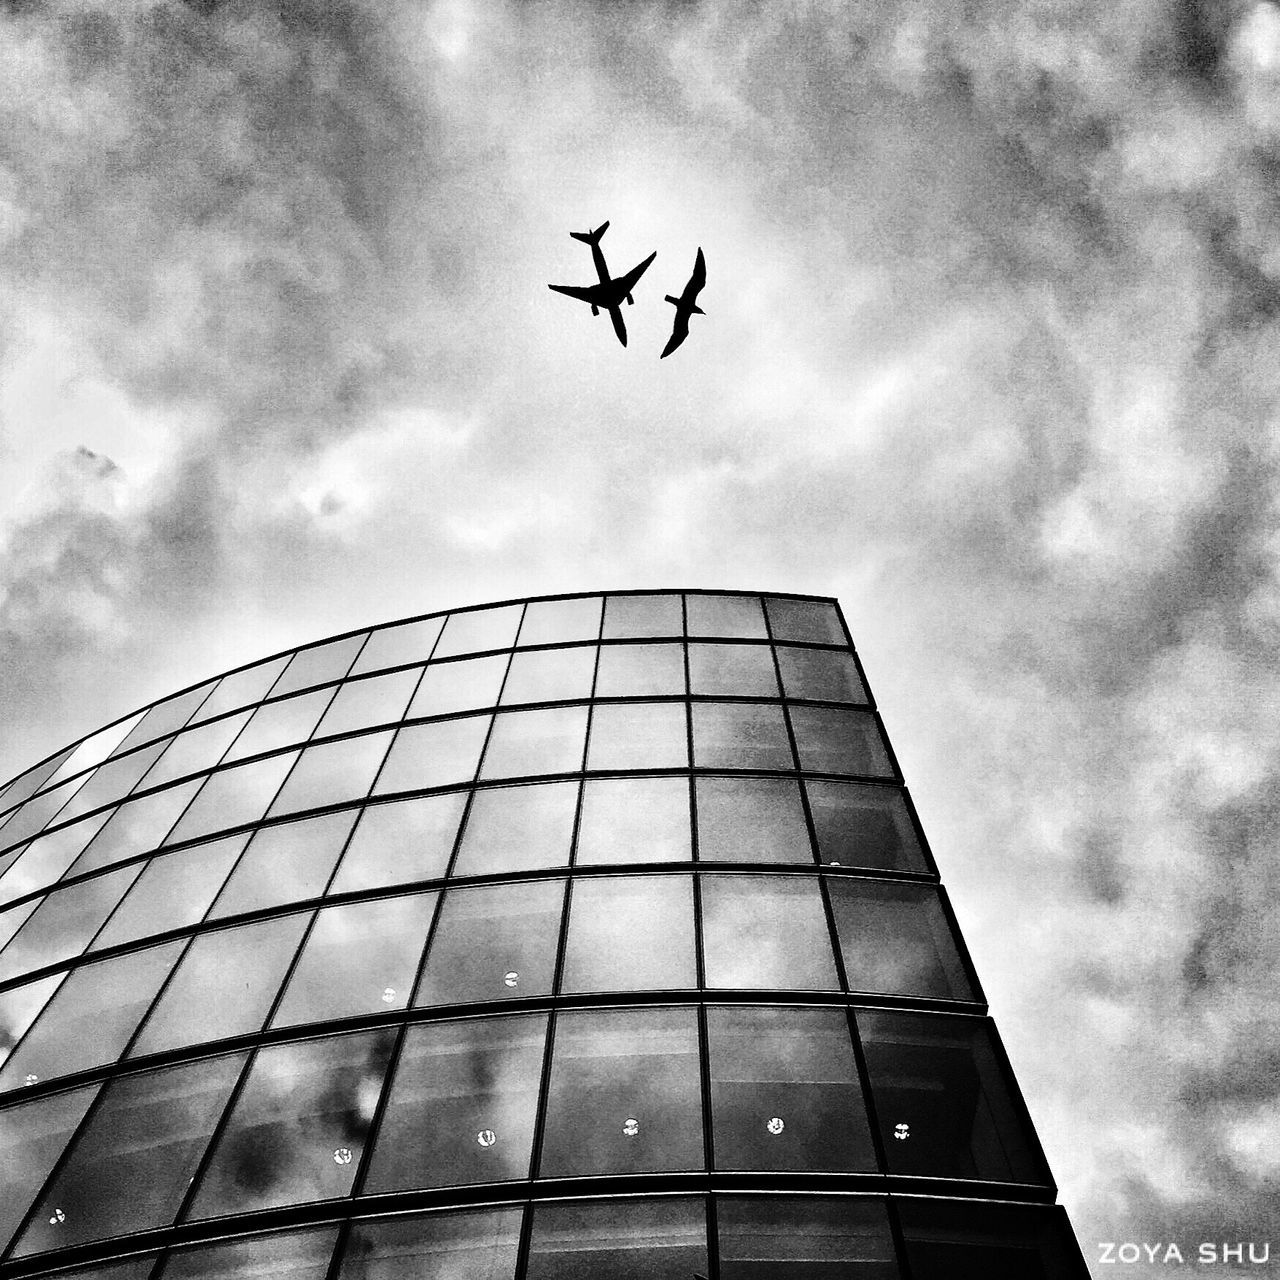 low angle view, architecture, flying, sky, built structure, building exterior, airplane, cloud - sky, travel, day, no people, transportation, mid-air, outdoors, modern, tall, city